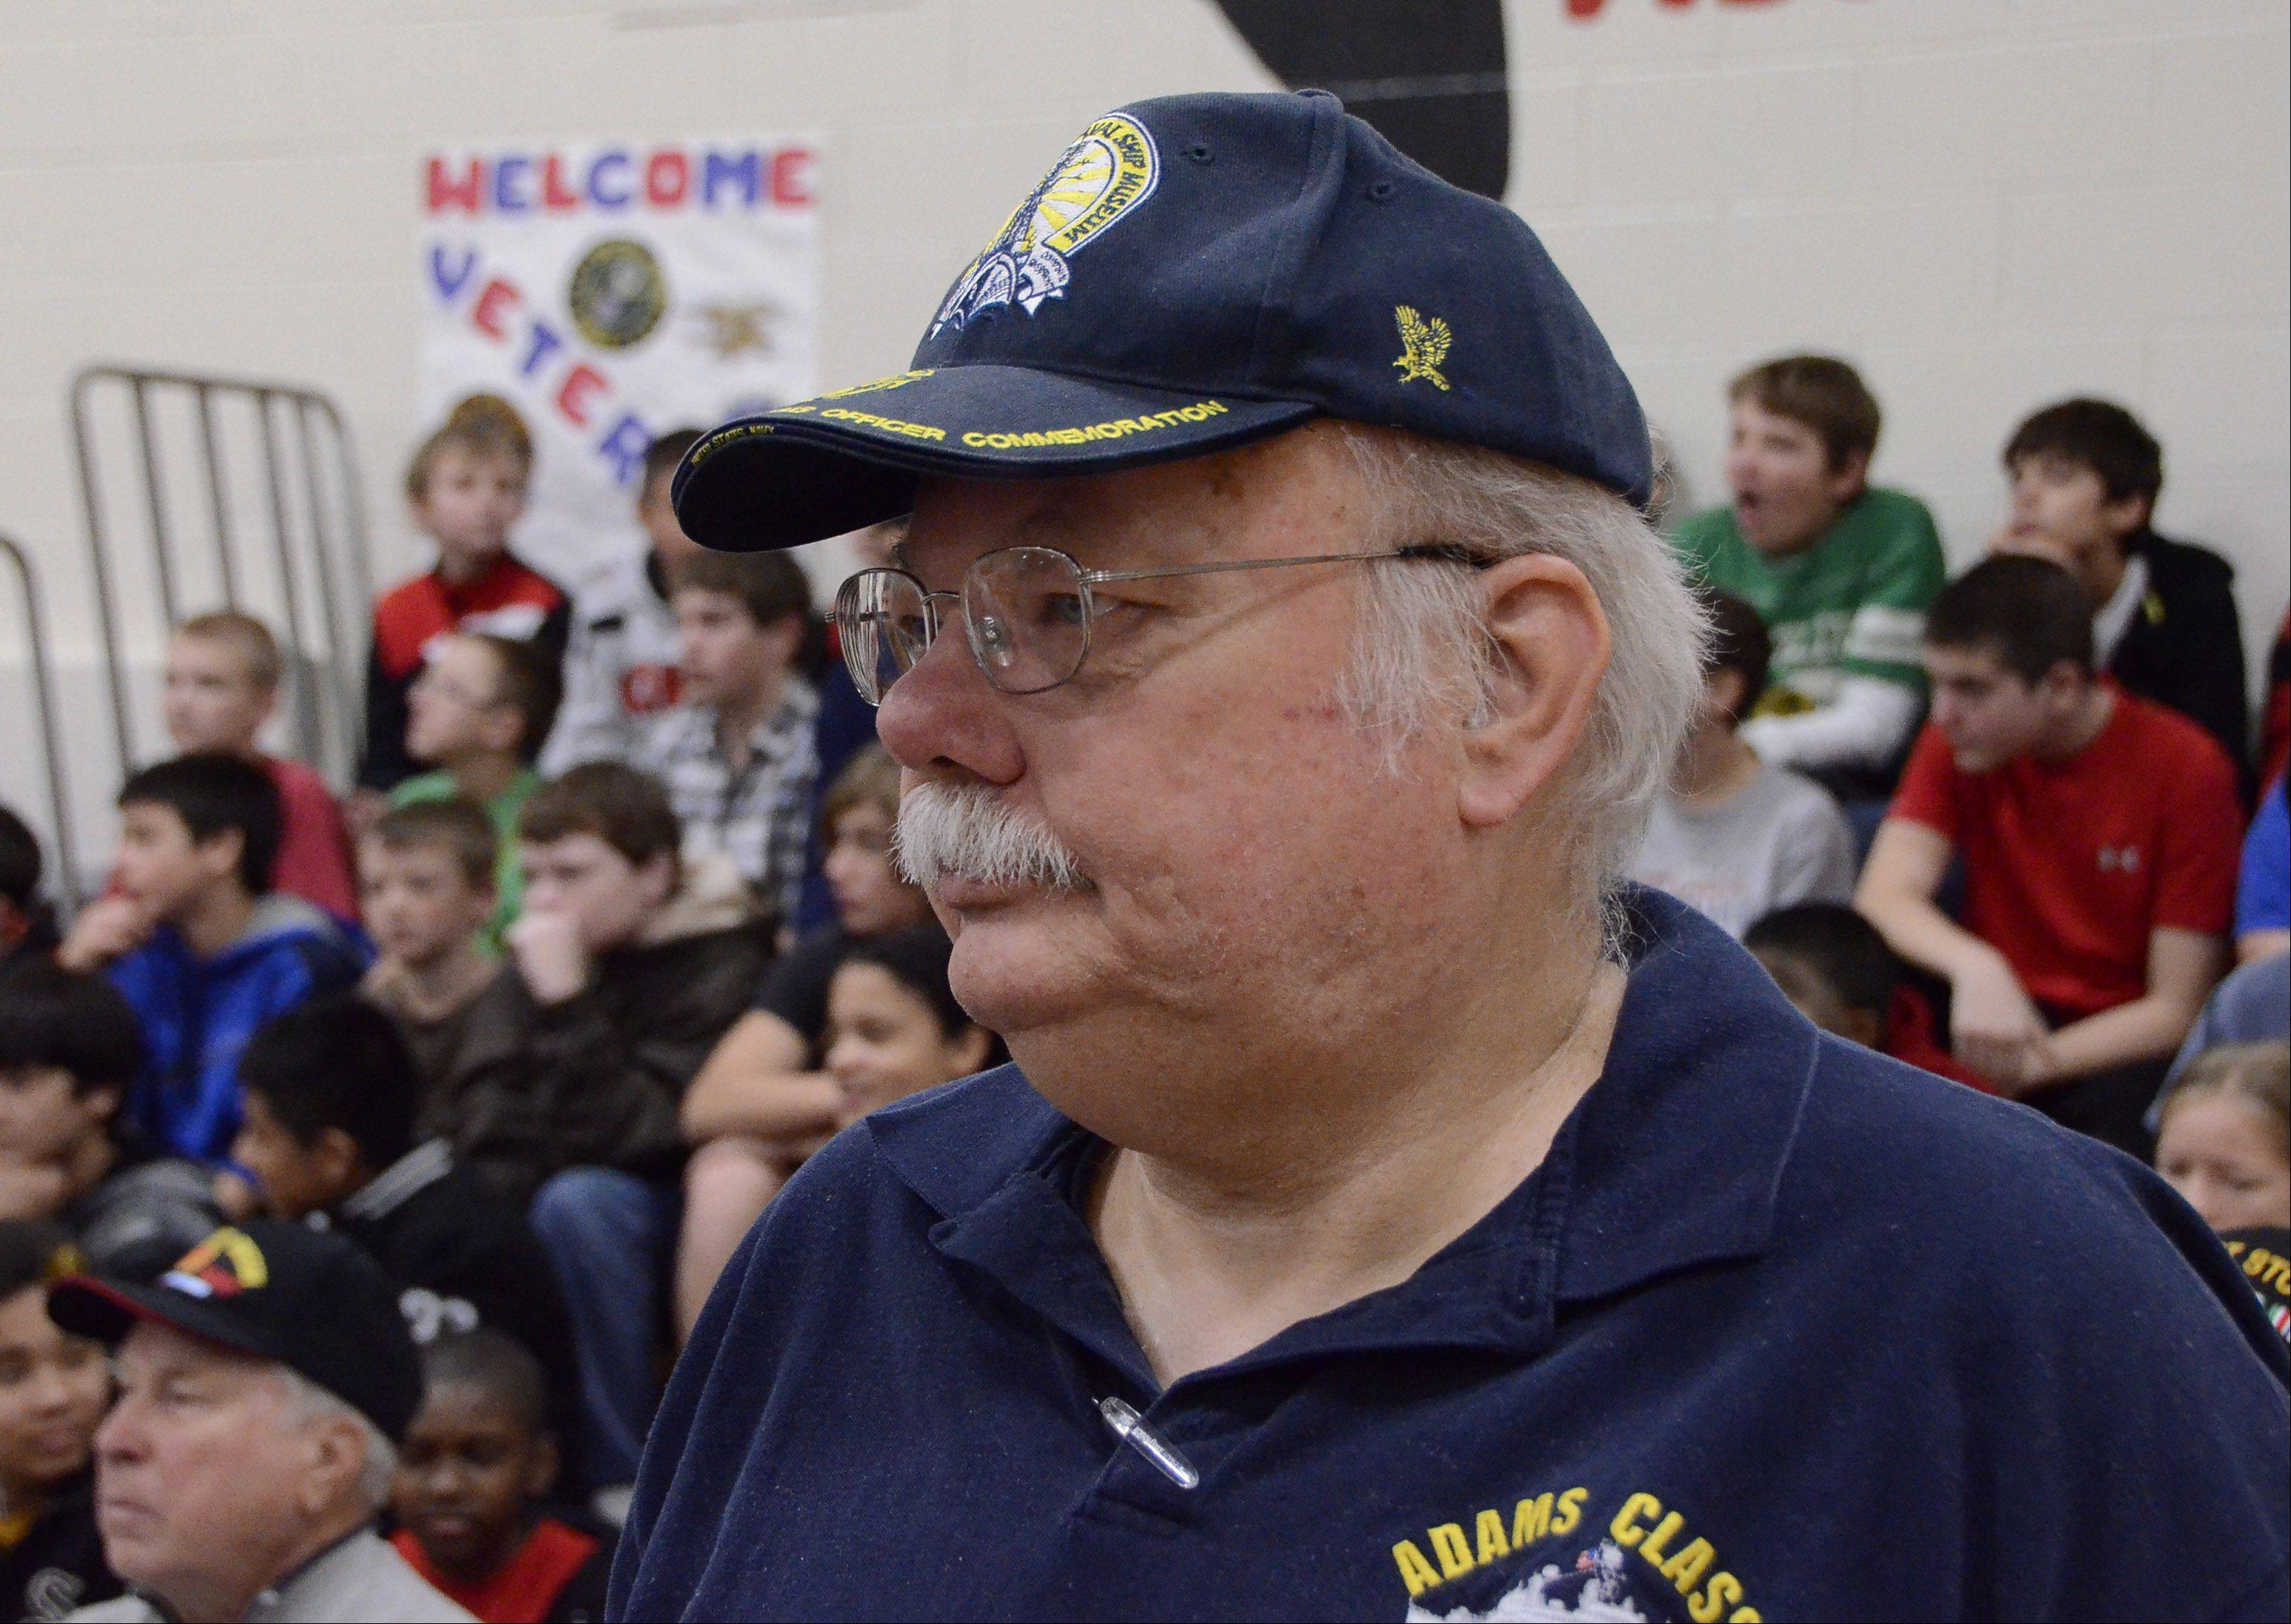 Art Ellingser of Arlington Heights, a Navy veteran of both the Korean and Vietnam Wars, stands while Anchors Aweigh is played at the Veterans Day assembly Friday at MacArthur Middle School in Prospect Heights.